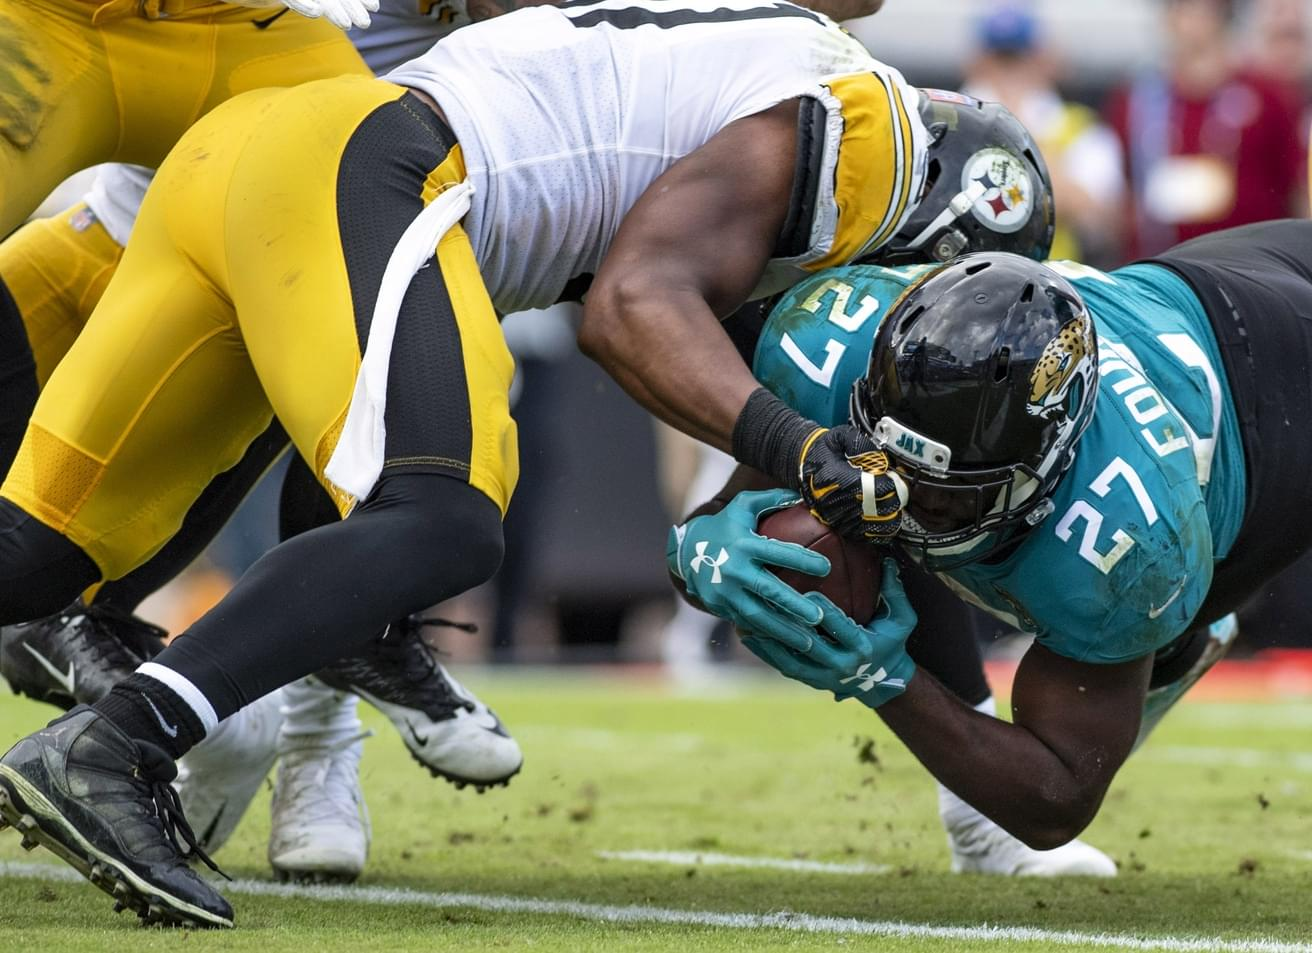 LAMM AT LARGE: Leonard Fournette's latest mistake can't be shrugged off